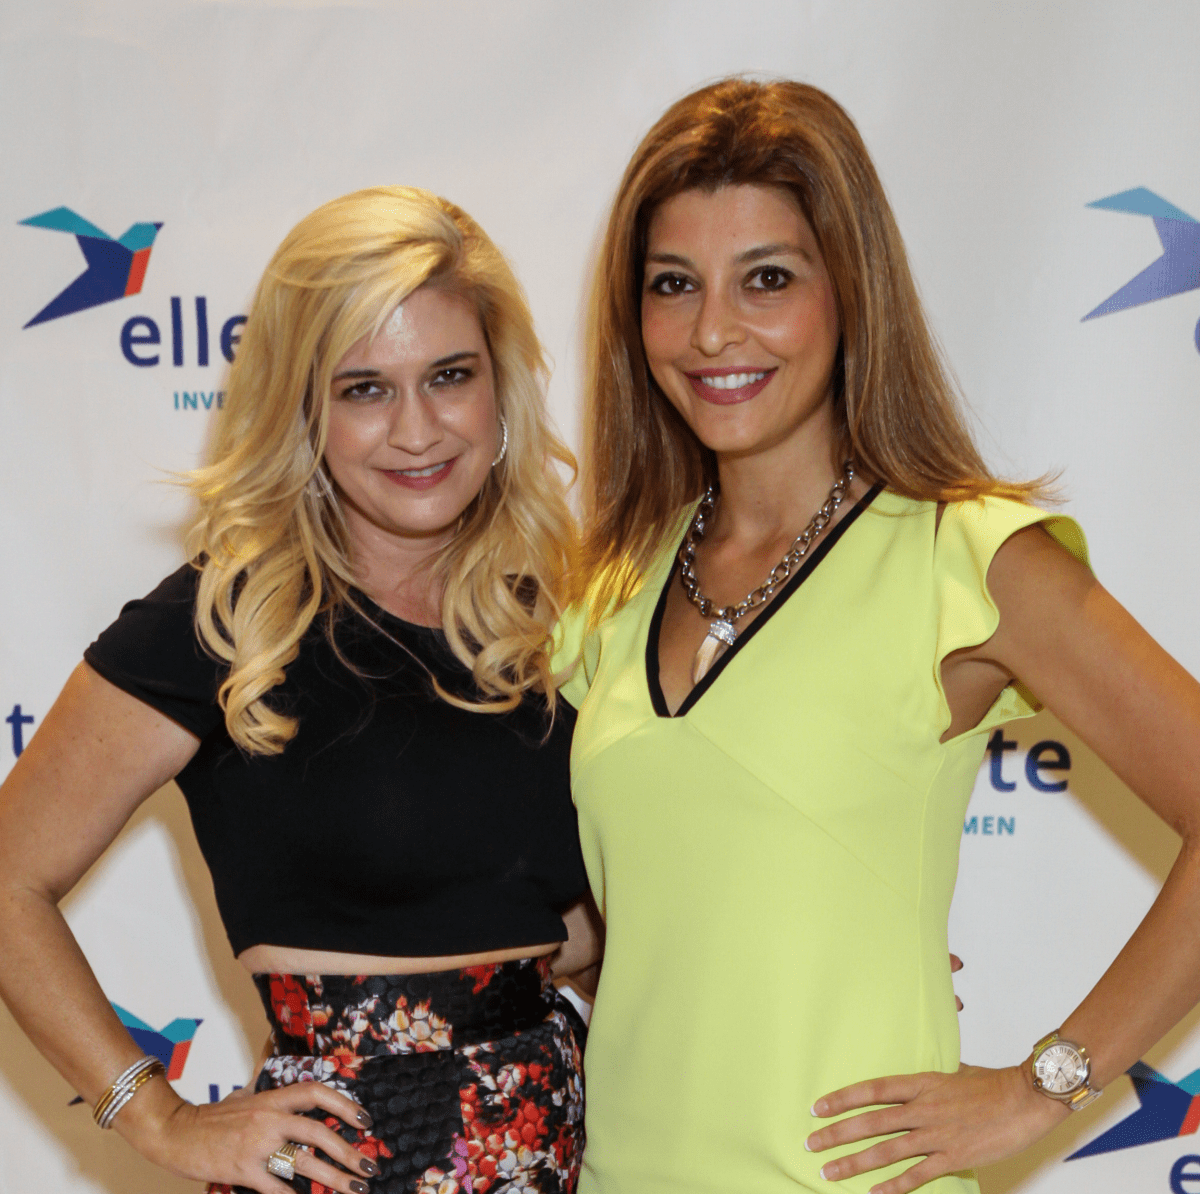 Houston, Ellevate event at Tootsies, August 2015, Tammie Anne Johnson, Rasha Nasreddin